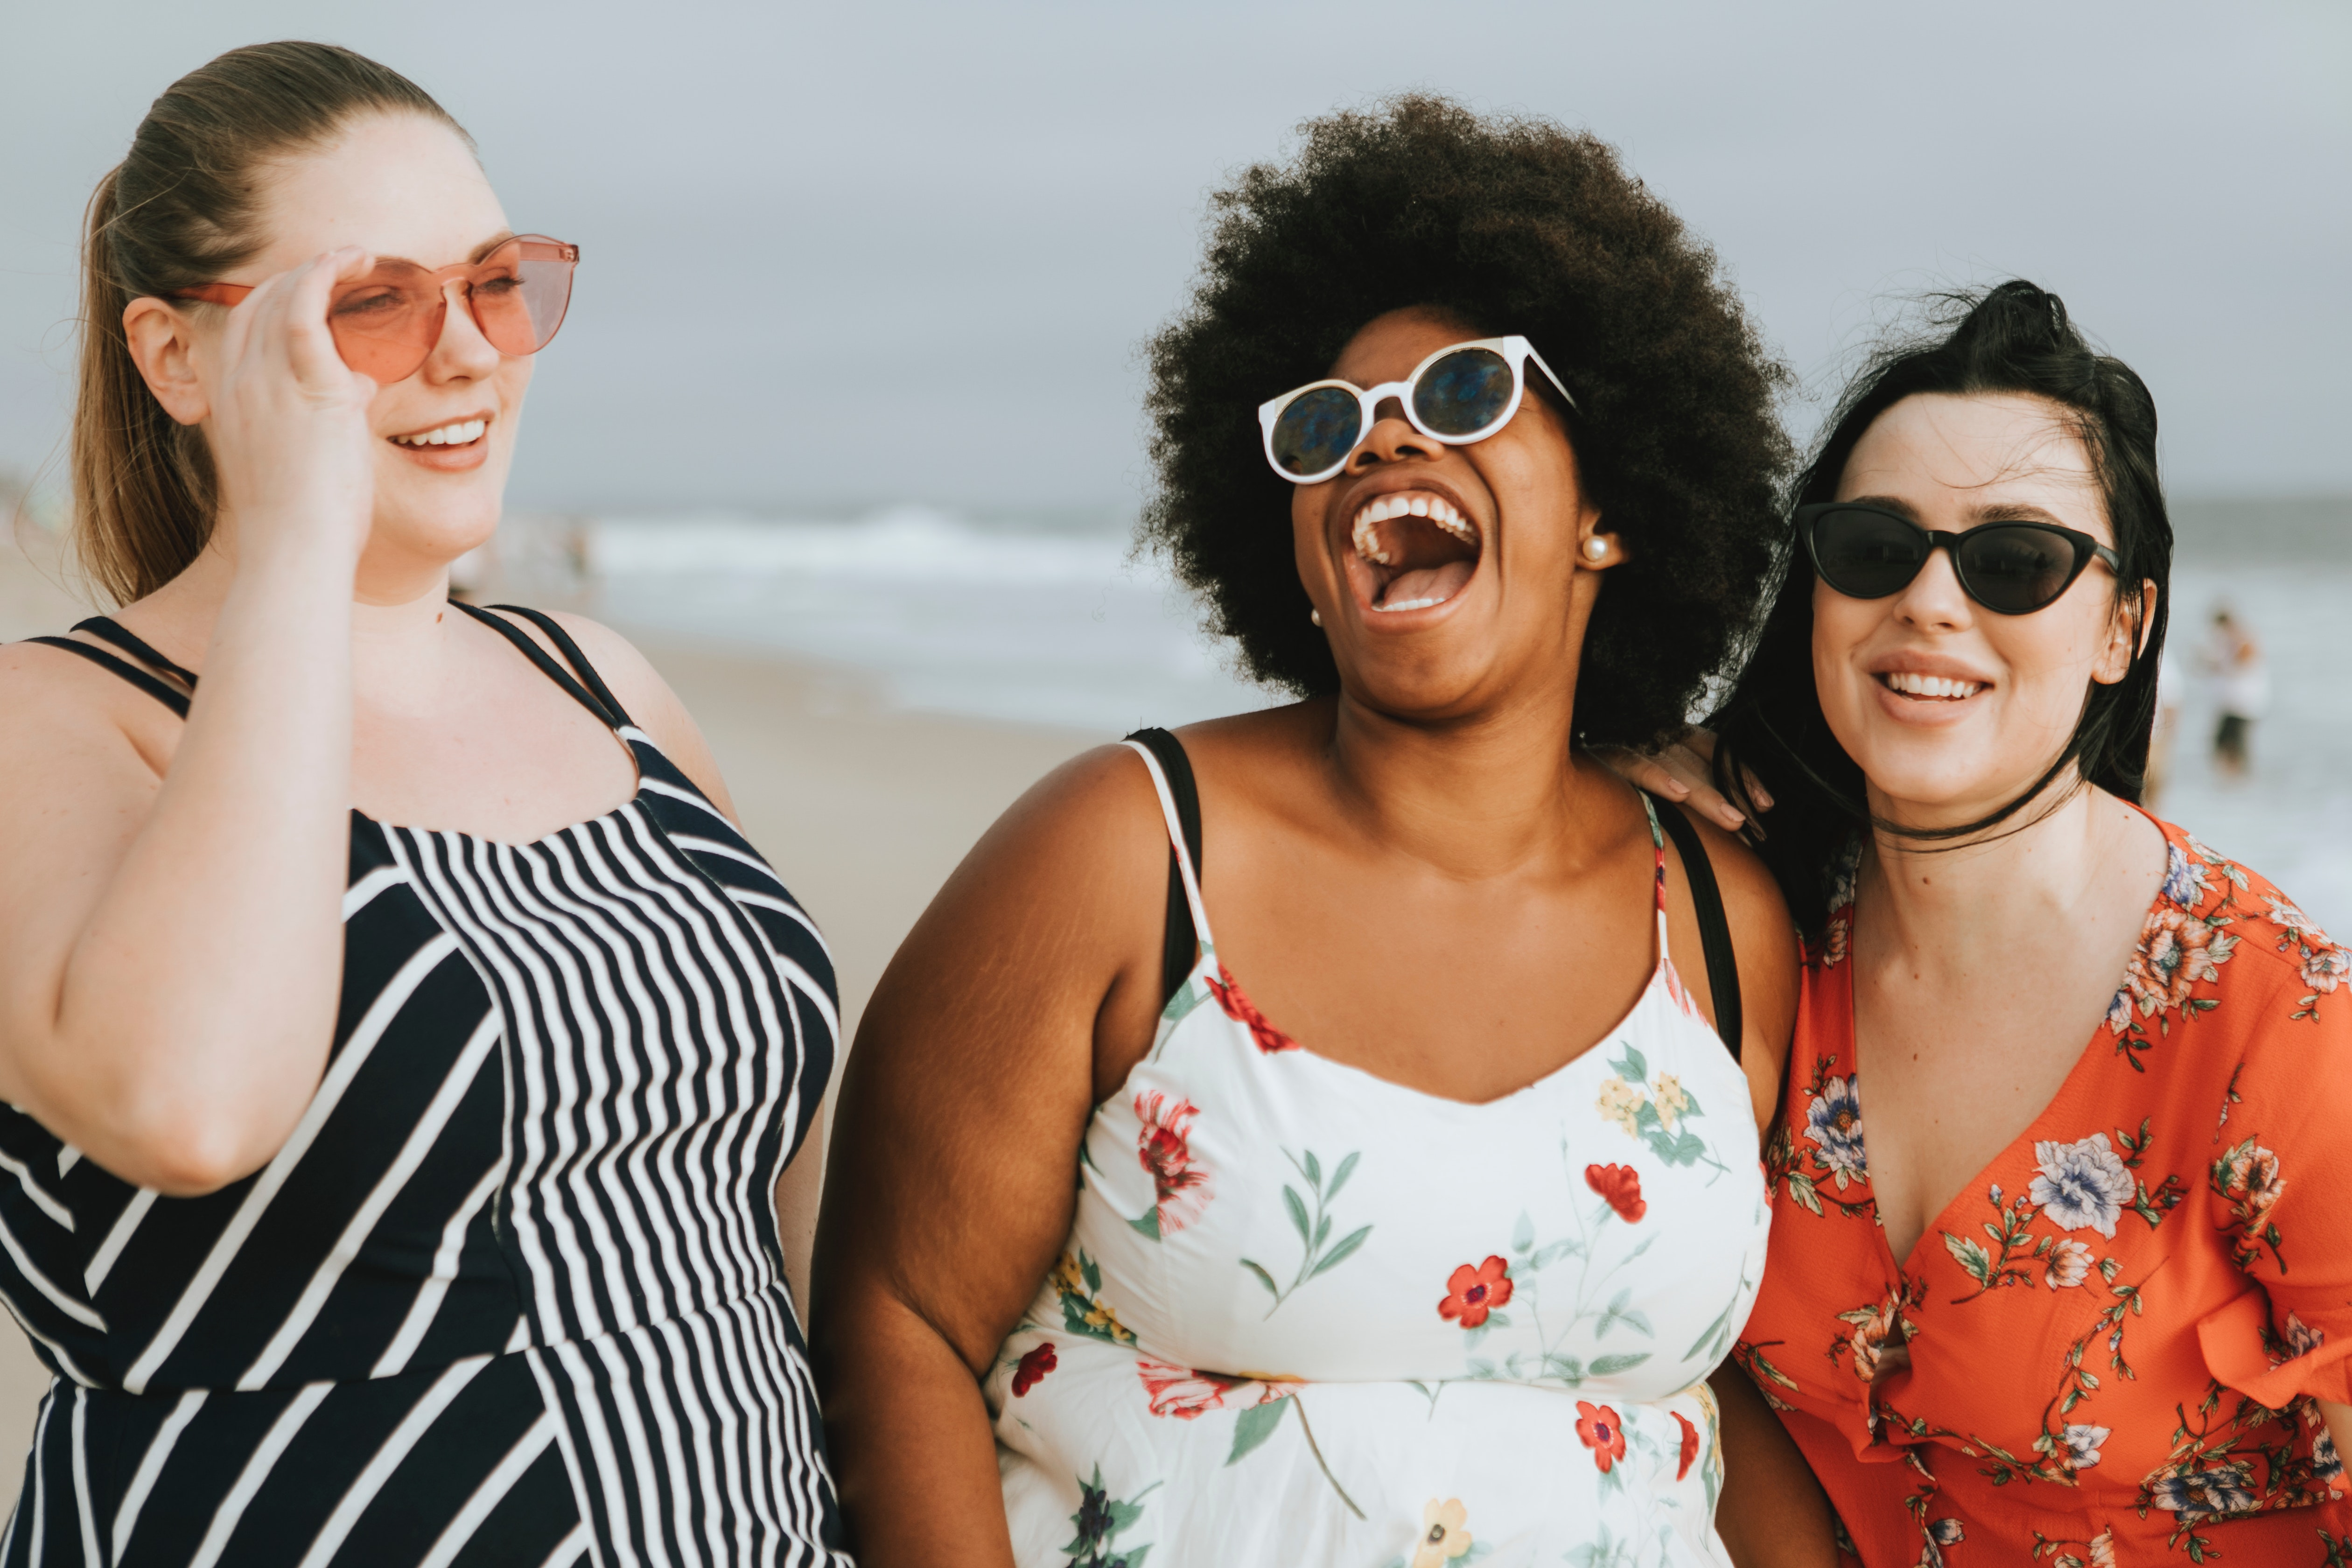 What's your body type? We'll help you find what looks best on you